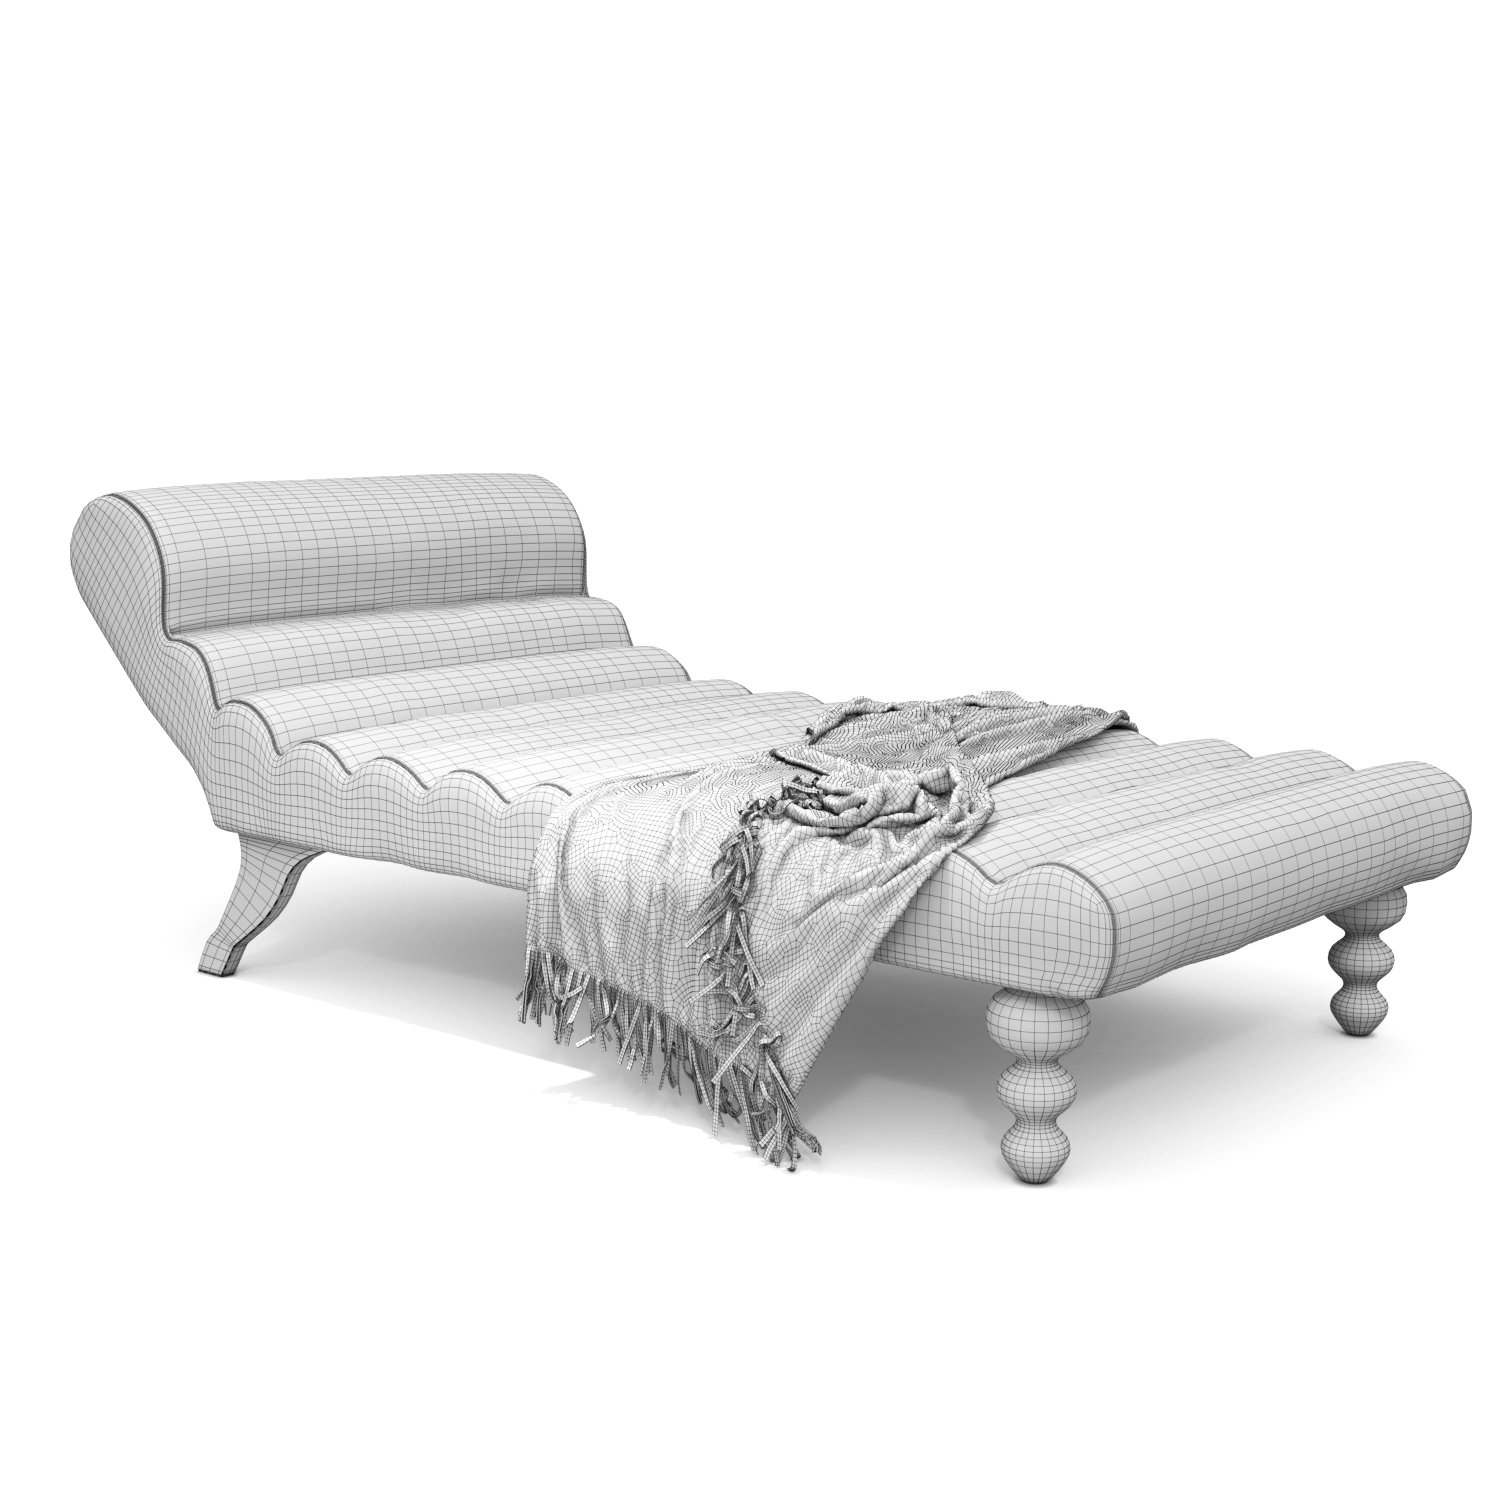 Modern Design Lazy Chaise Lounge Indoor 3d Model In Sofa 3dexport